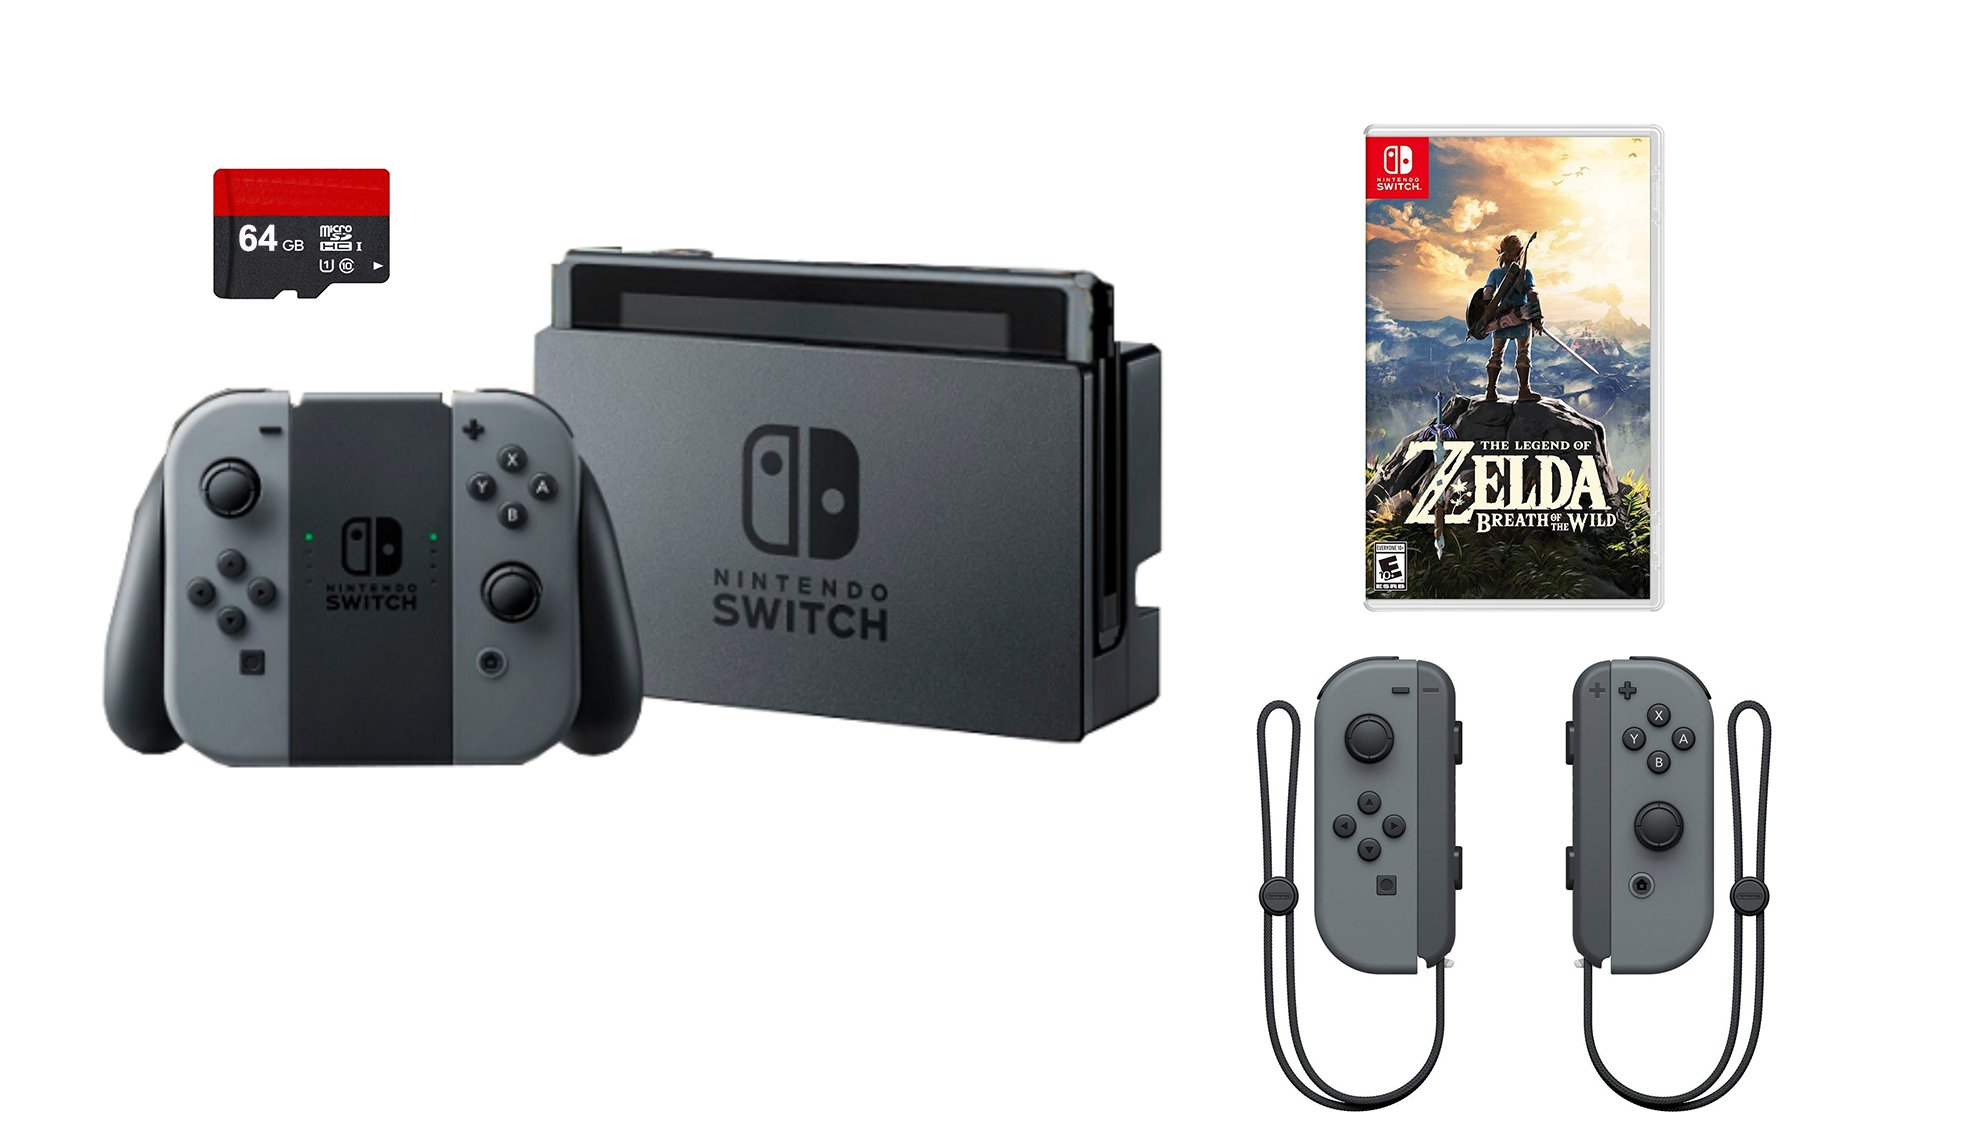 Nintendo Swtich 4 items Bundle:Nintendo Switch 32GB Console Gray Joy-con,64GB Micro SD Memory Card and an Extra Pair of Nintendo Joy-Con (L/R) Wireless Controllers Gray,The Legend of Zelda